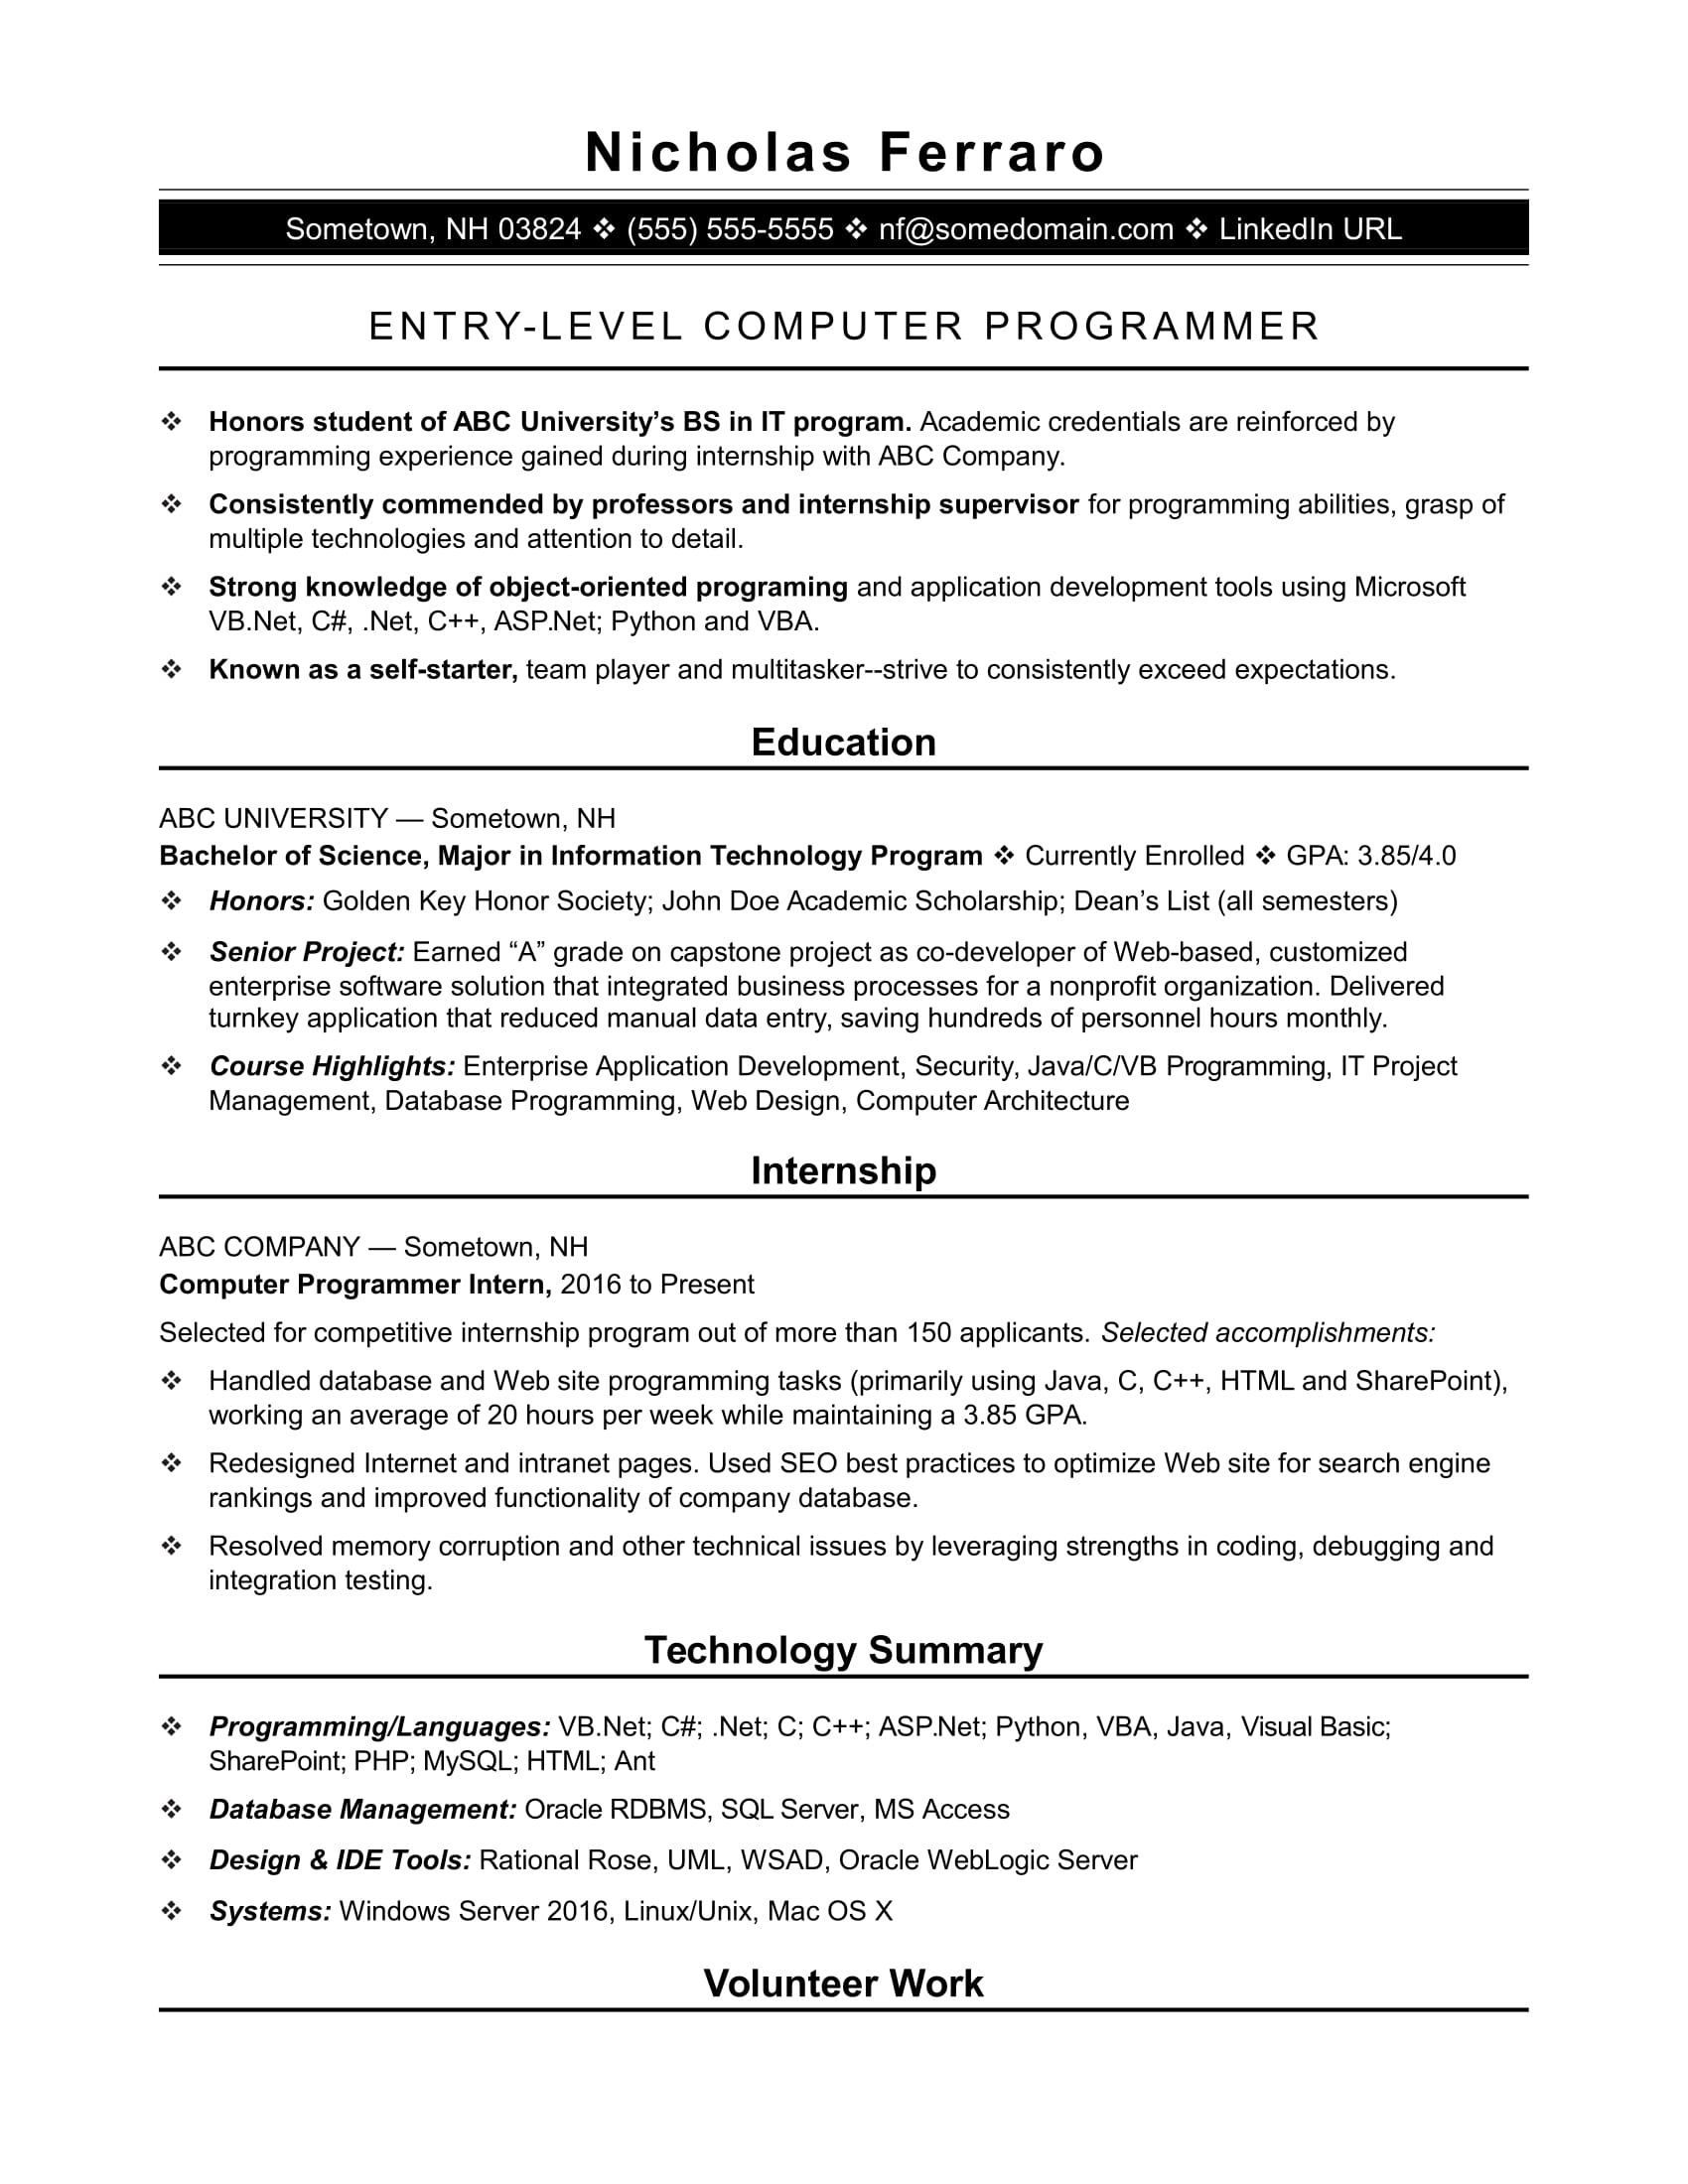 sample resume for an entry level computer programmer - Computer Programming Resume